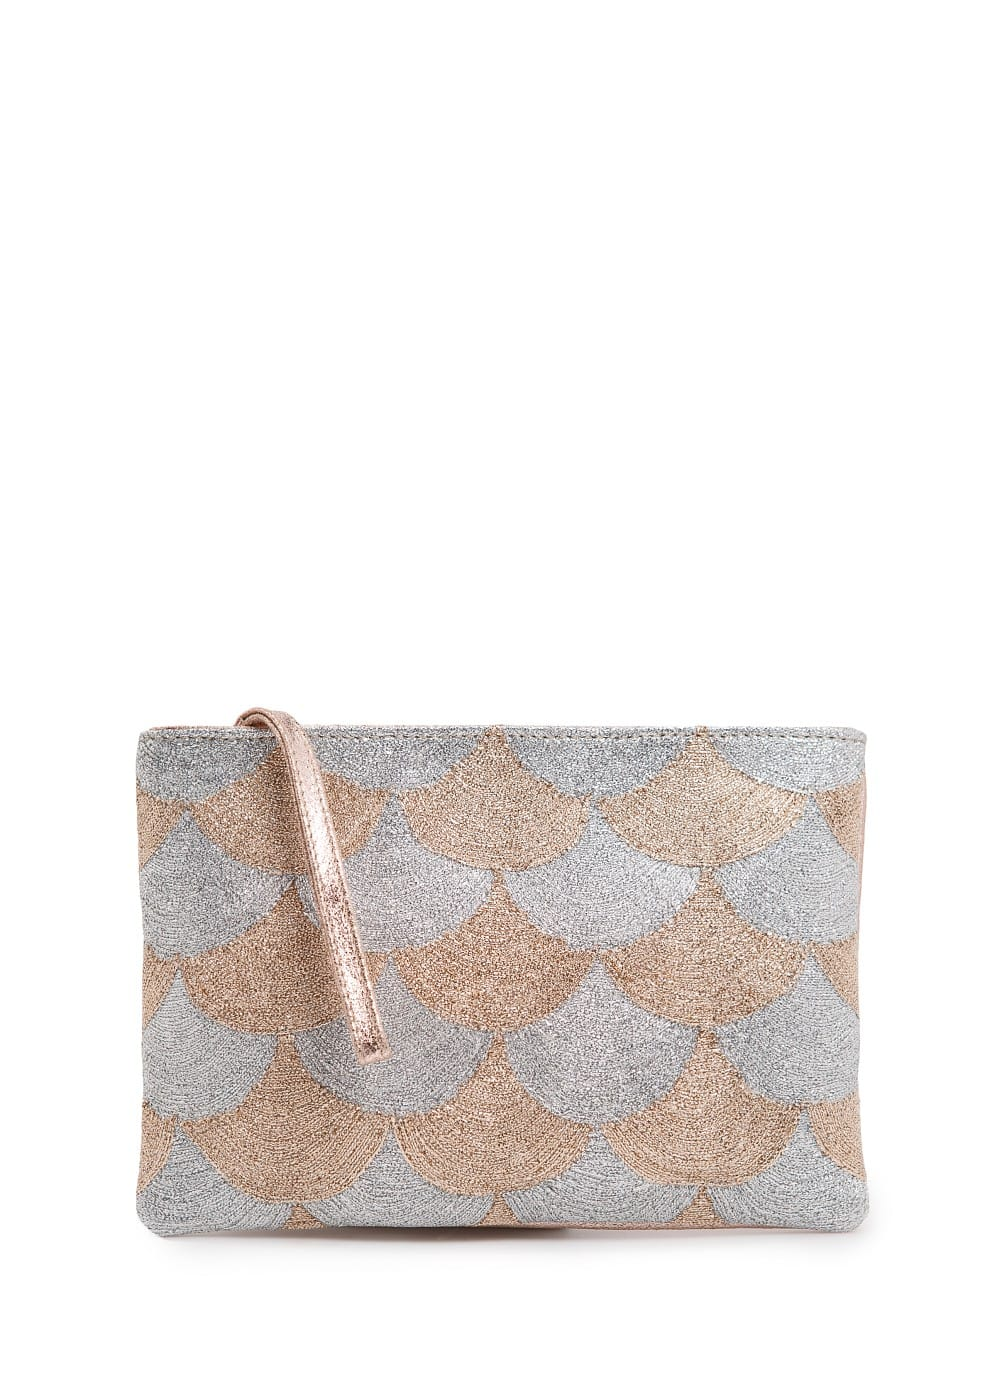 Scallop pattern metallic clutch | MANGO